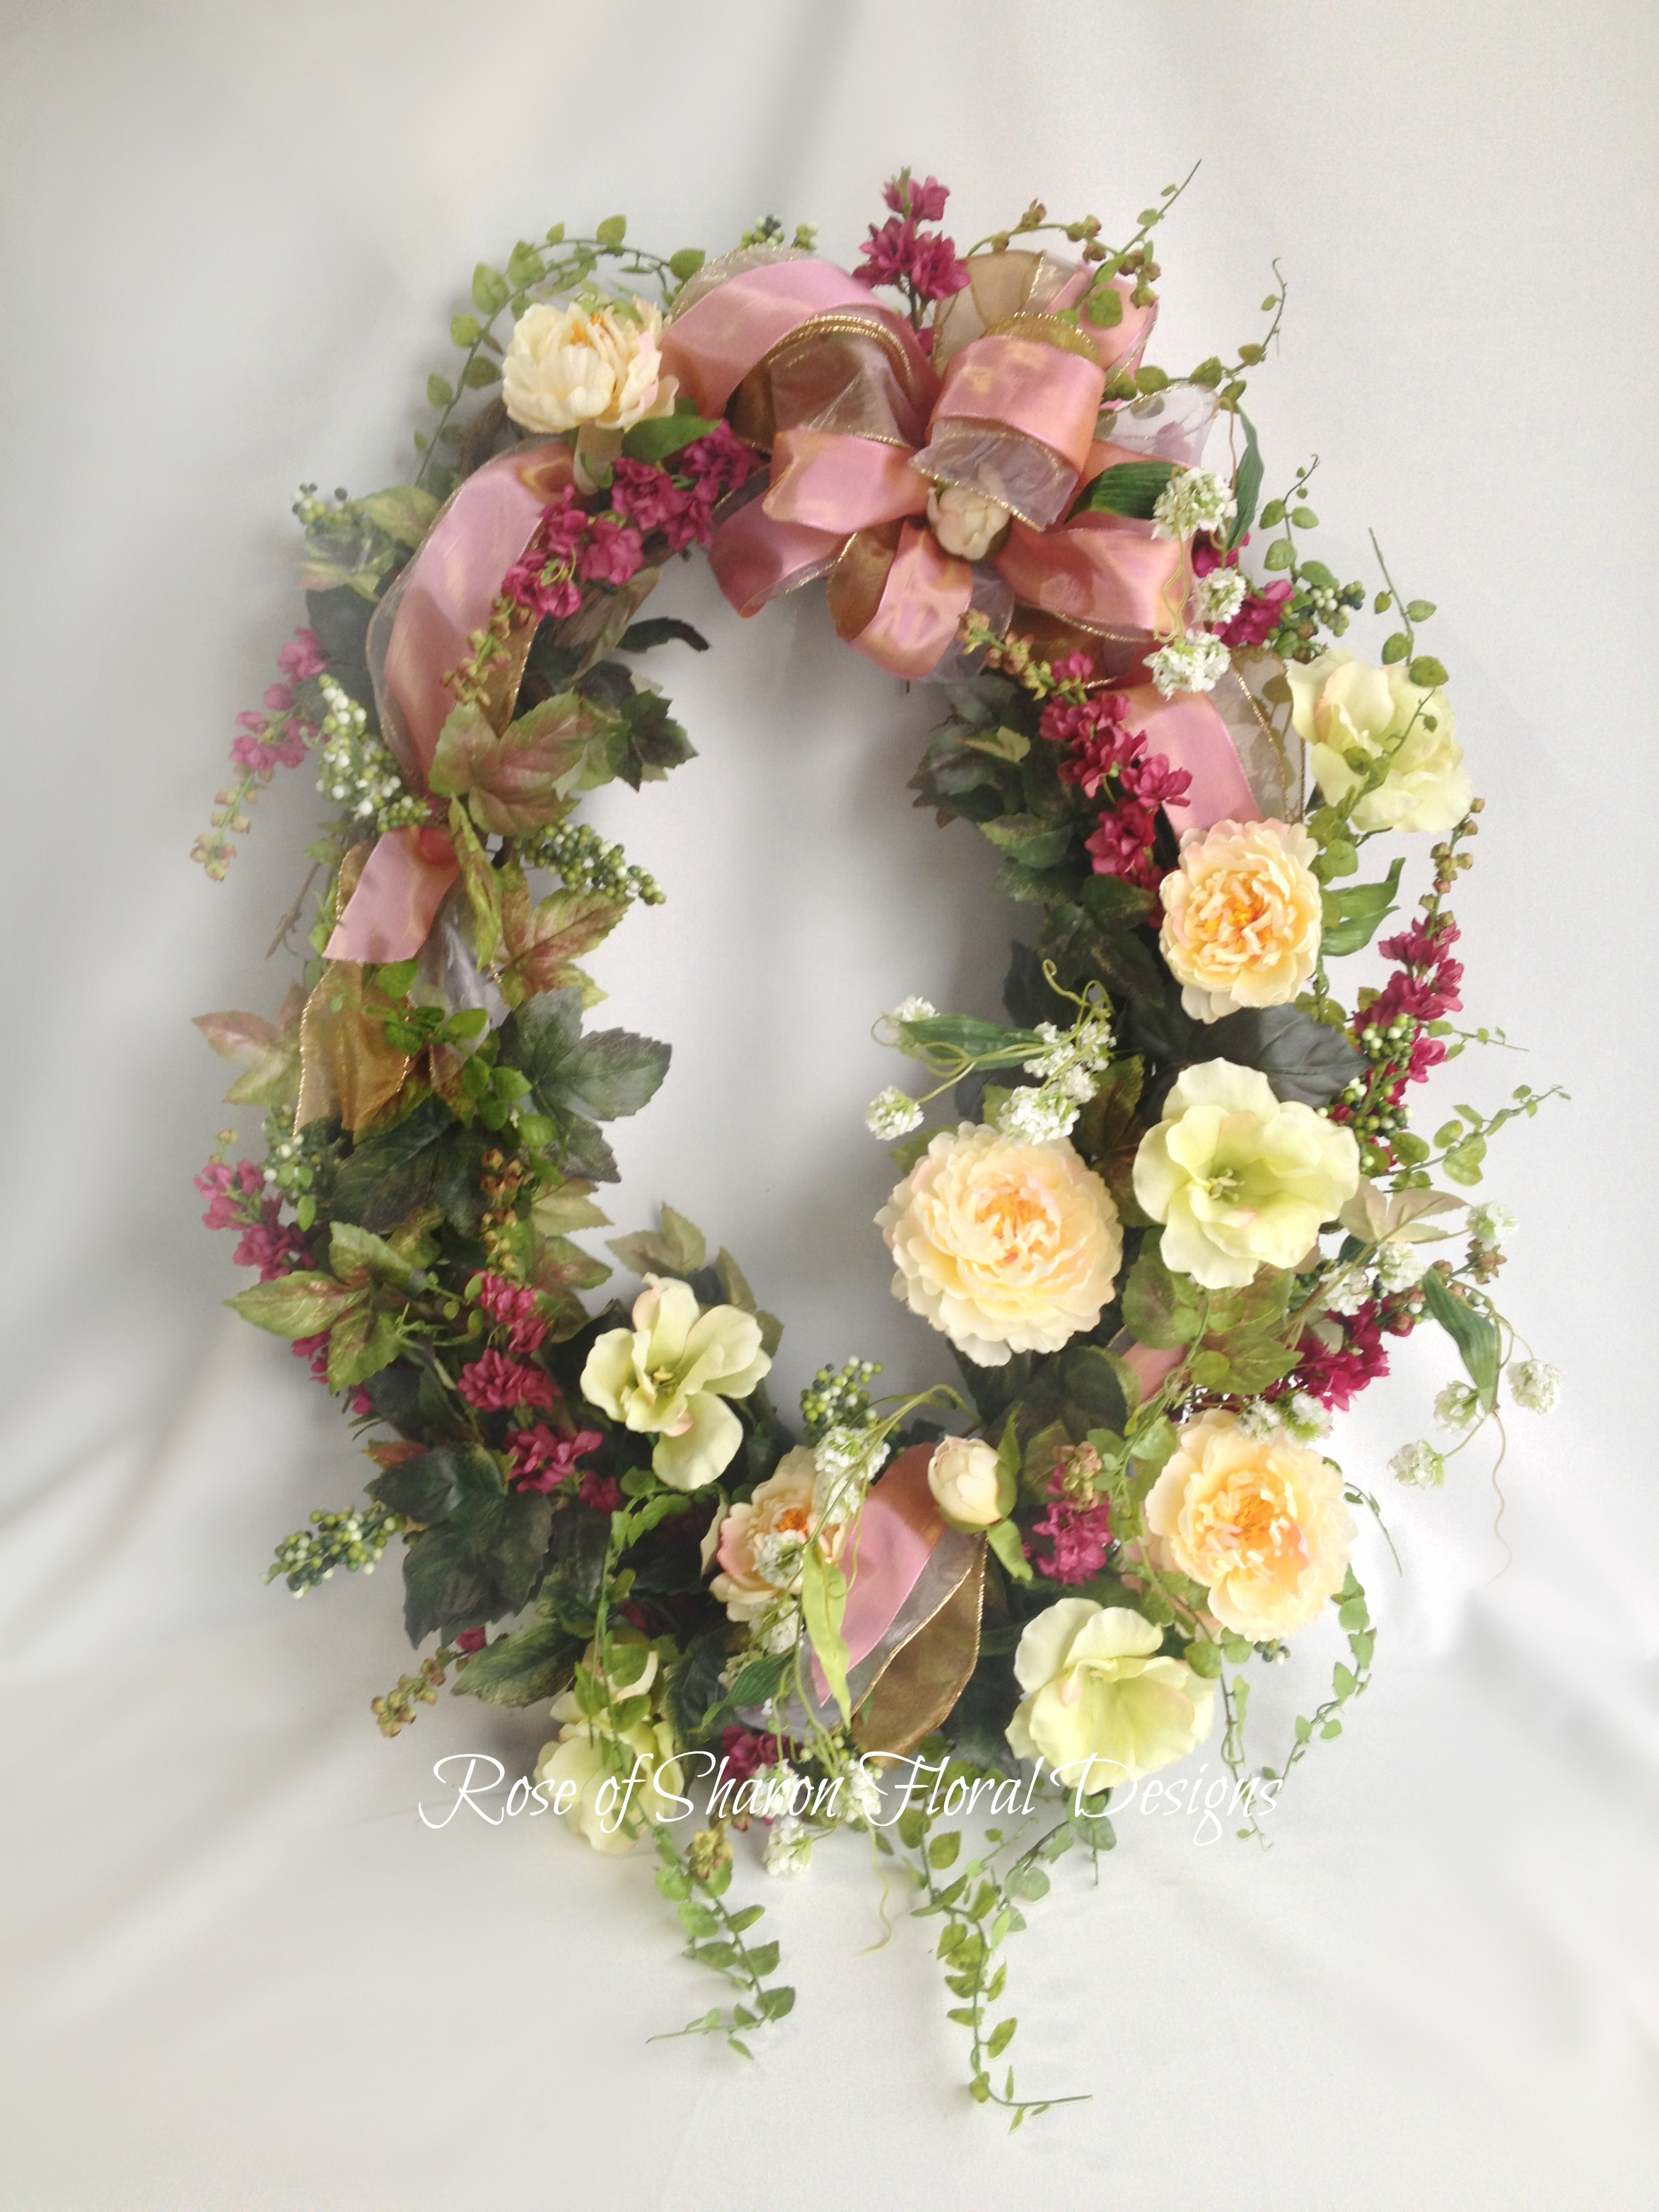 English Garden Silk Wreath, Rose of Sharon Floral Designs